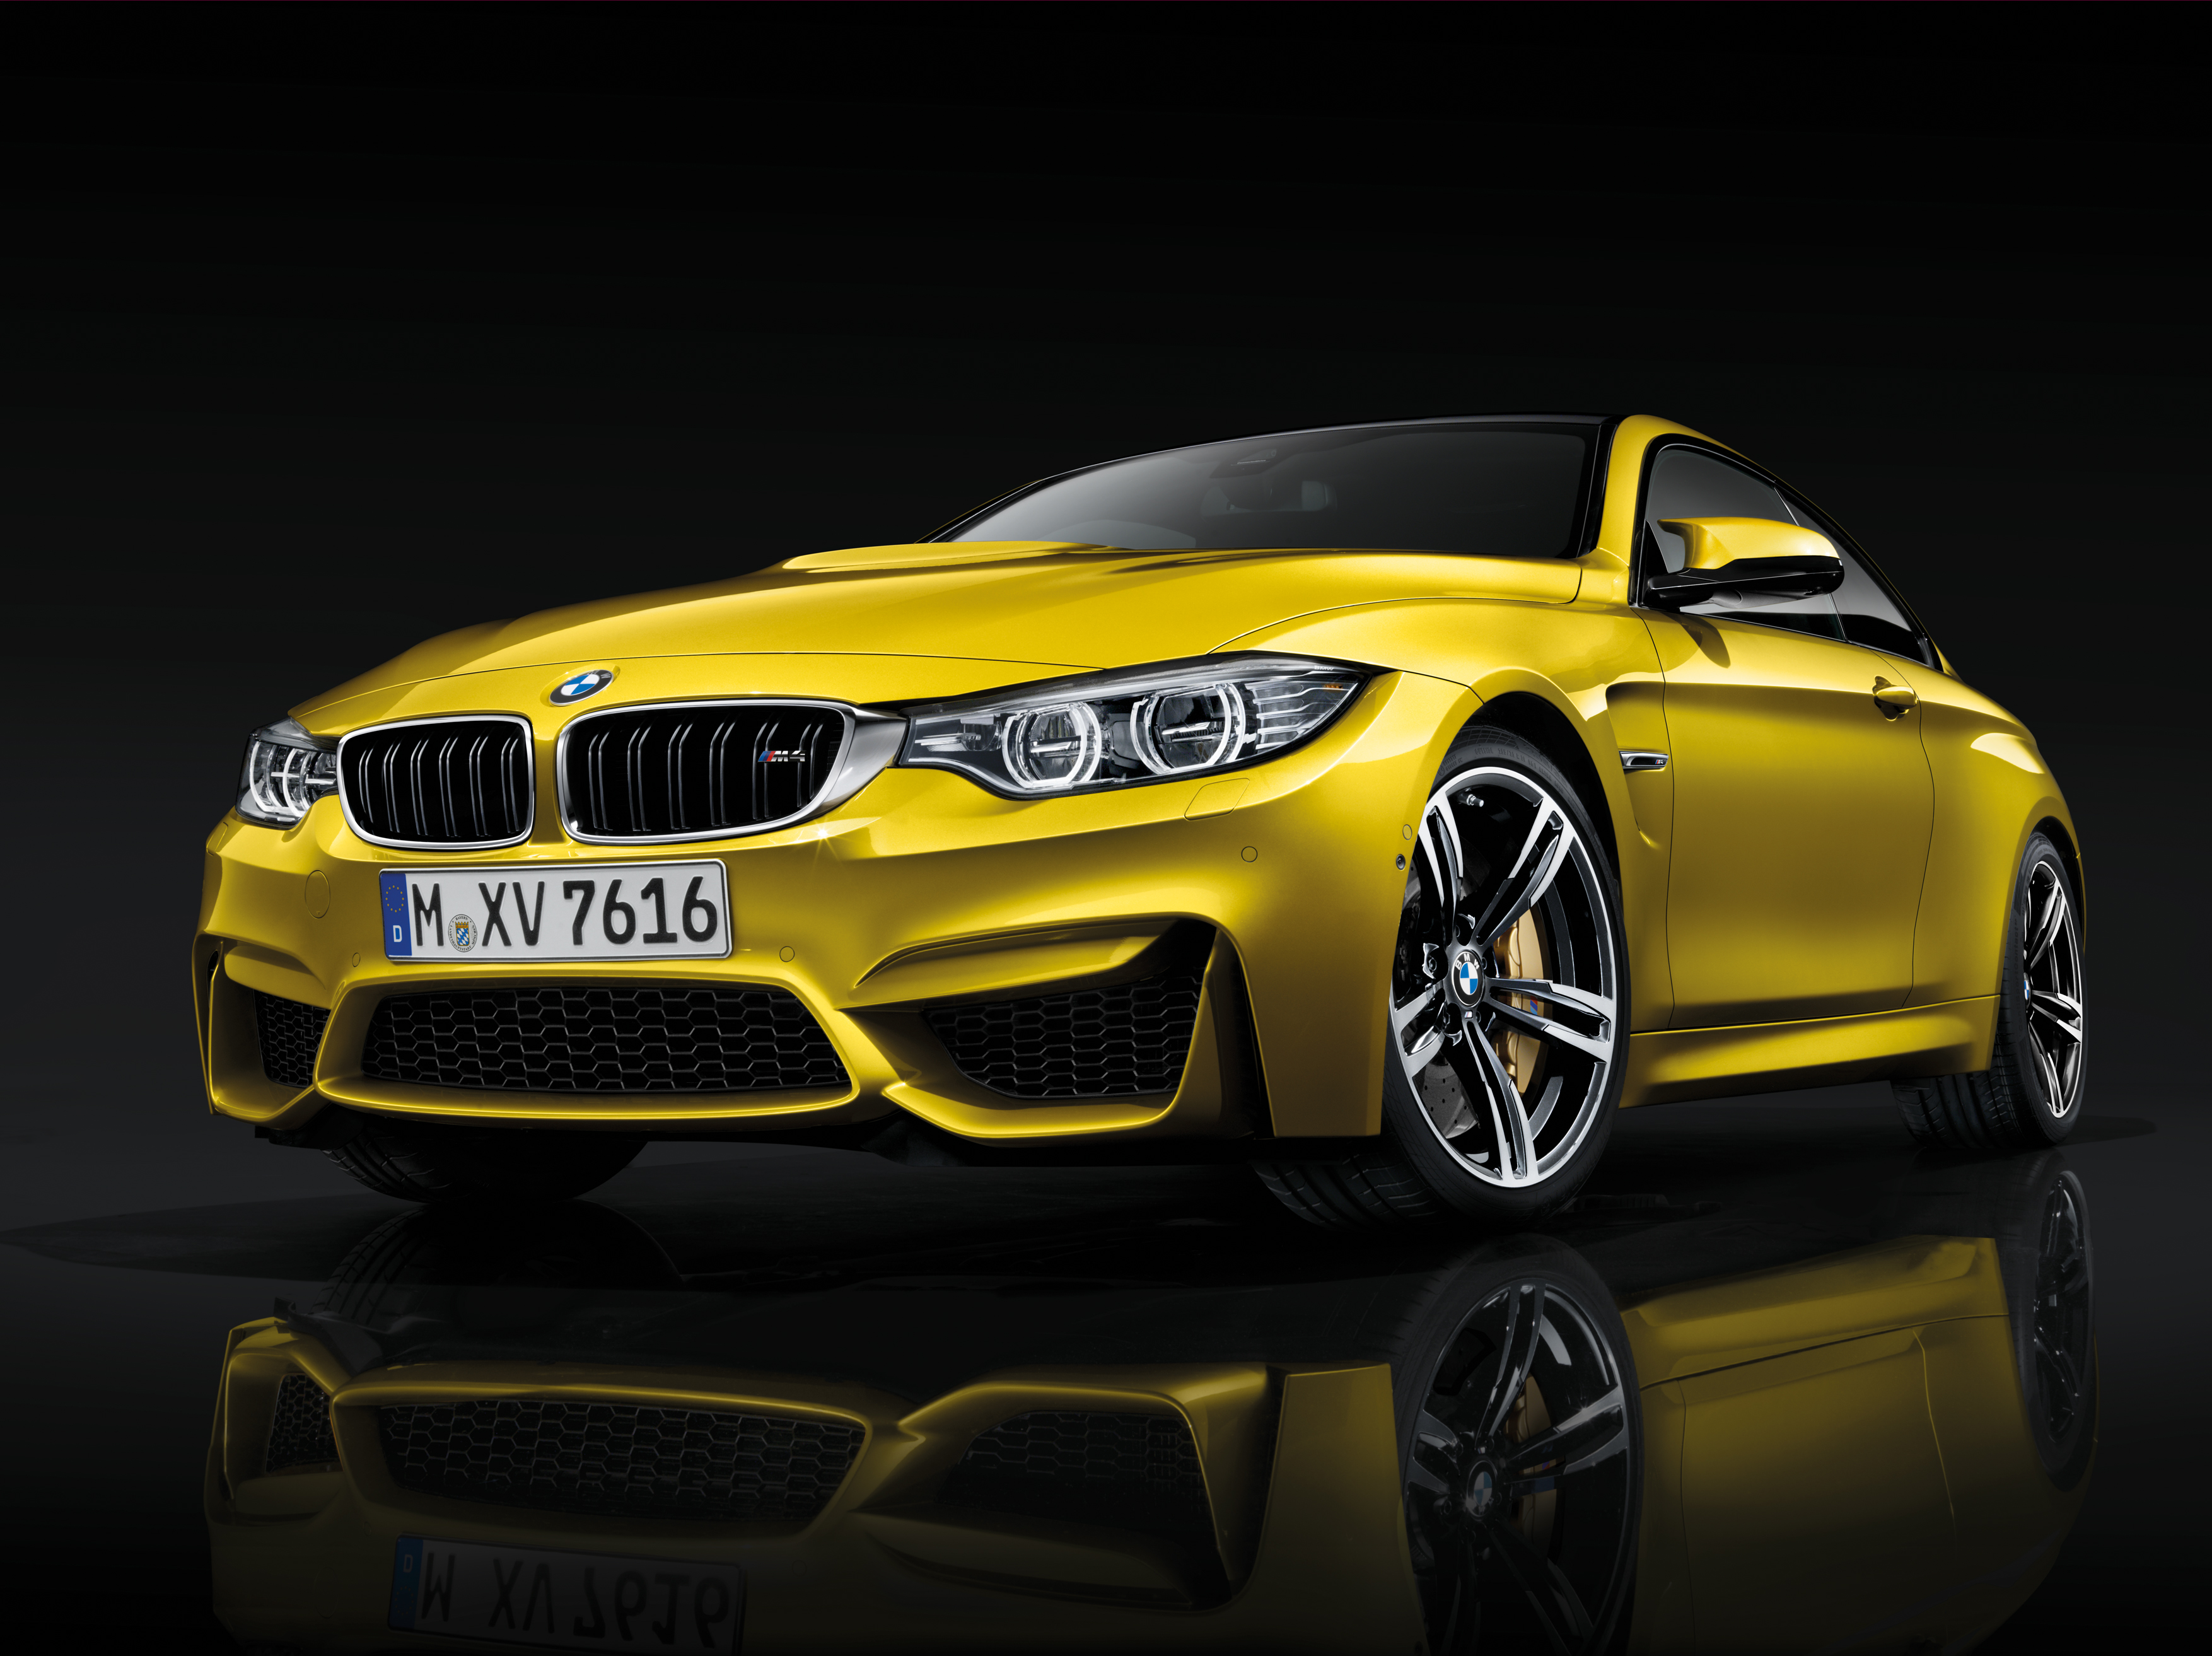 2015 BMW M4 Coupe Stills - (6) - SMADEMEDIA.COM Galleria